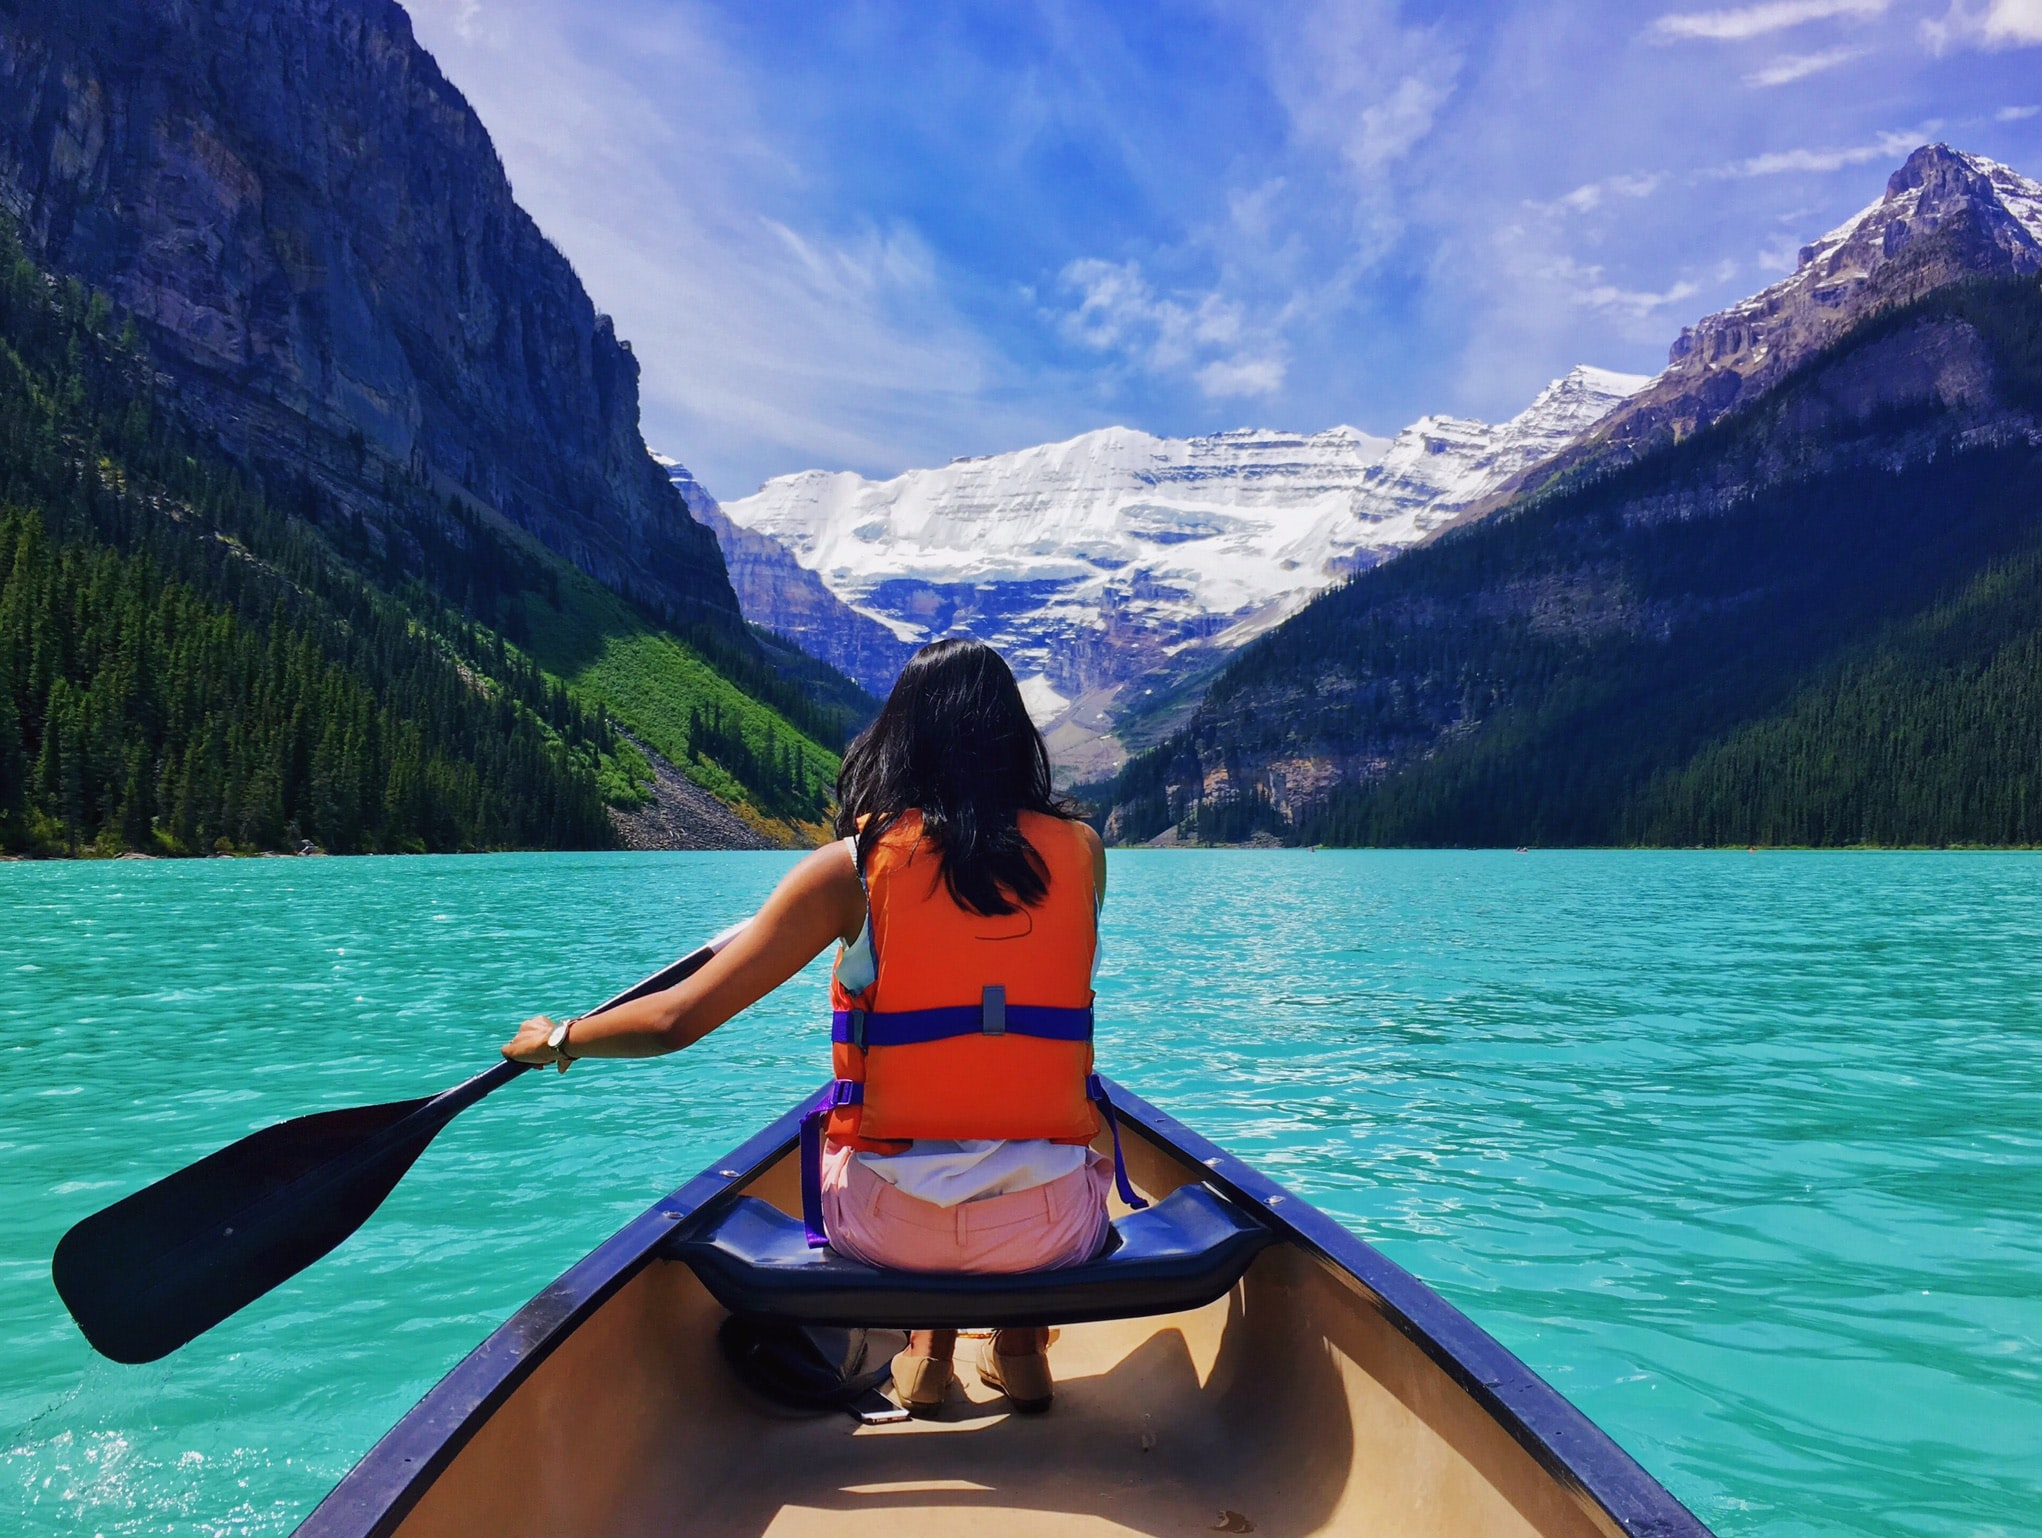 woman rowing riding a boat near mountains